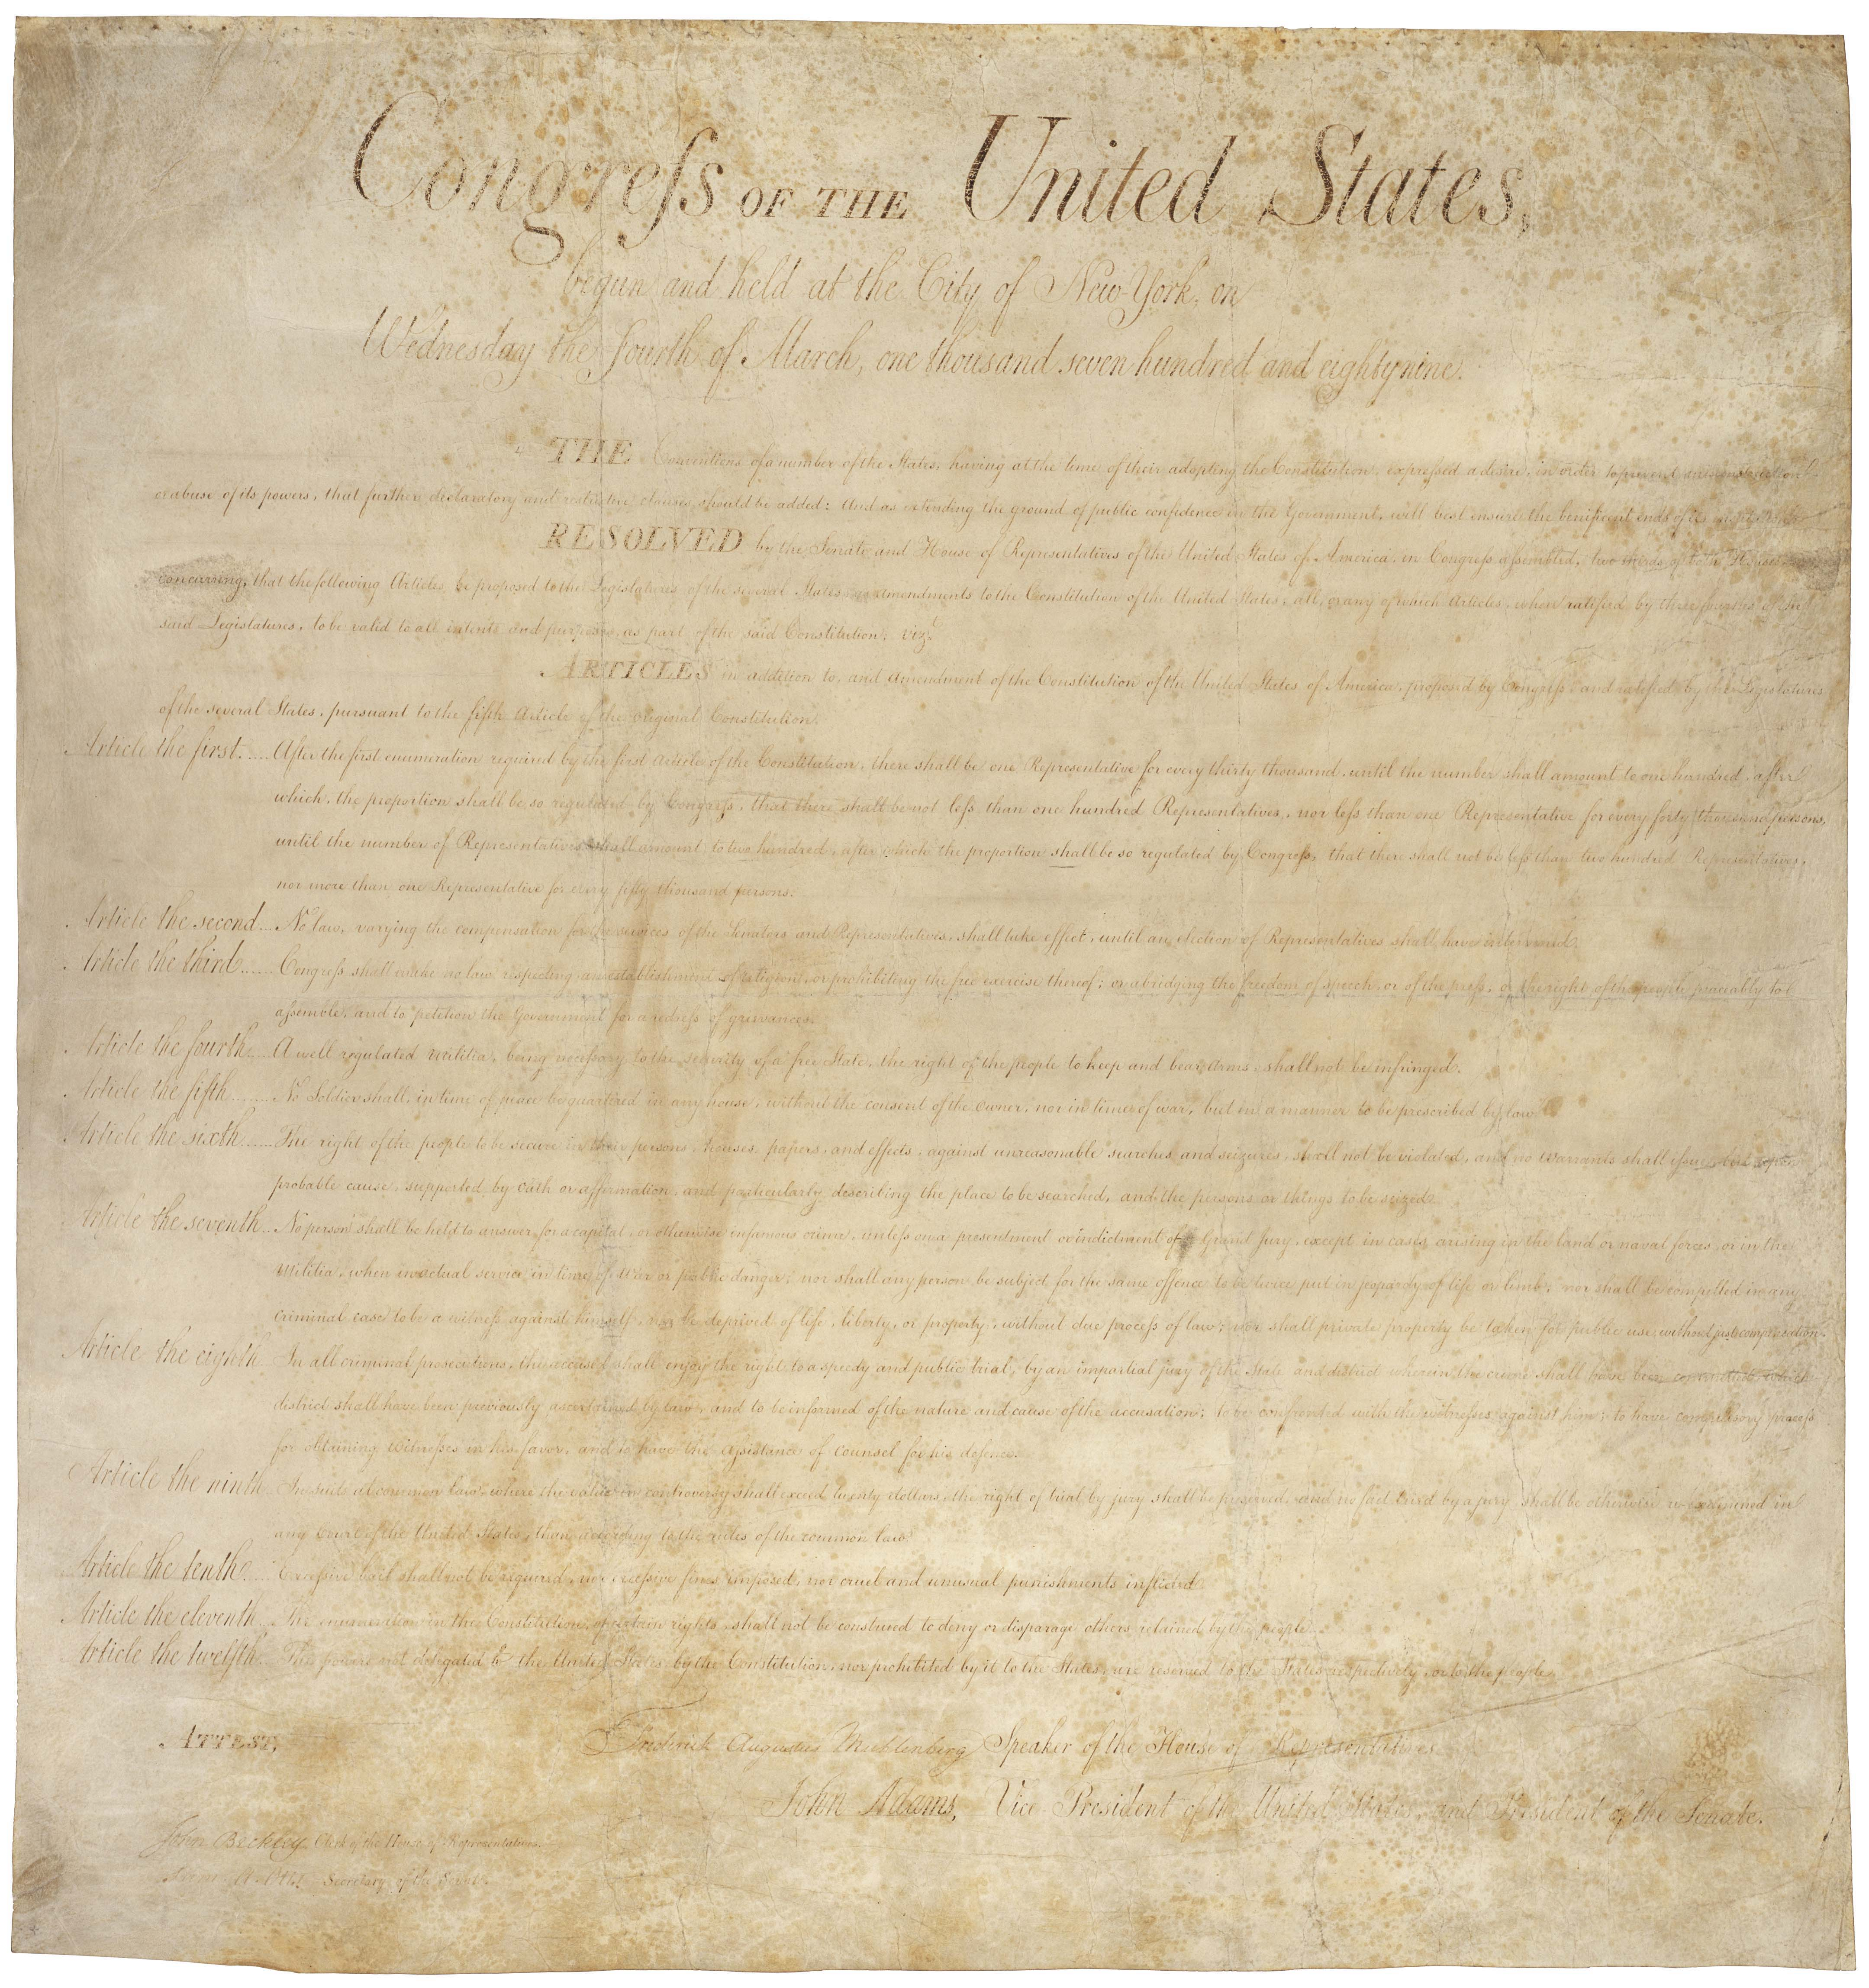 https://i1.wp.com/upload.wikimedia.org/wikipedia/commons/7/79/Bill_of_Rights_Pg1of1_AC.jpg